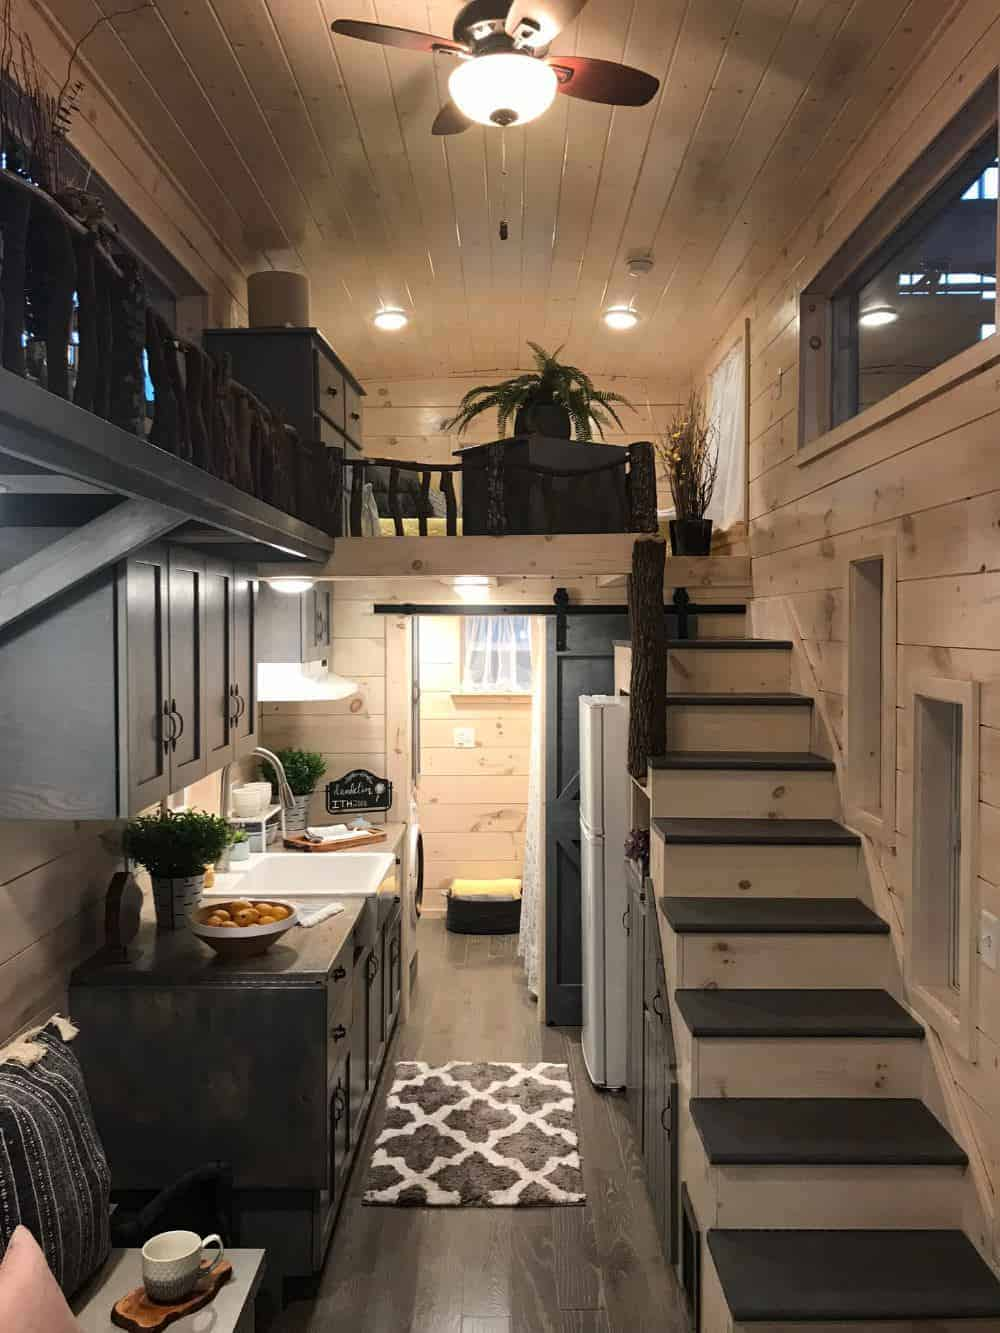 Spacious kitchen in tiny home by Incredible Tiny Homes